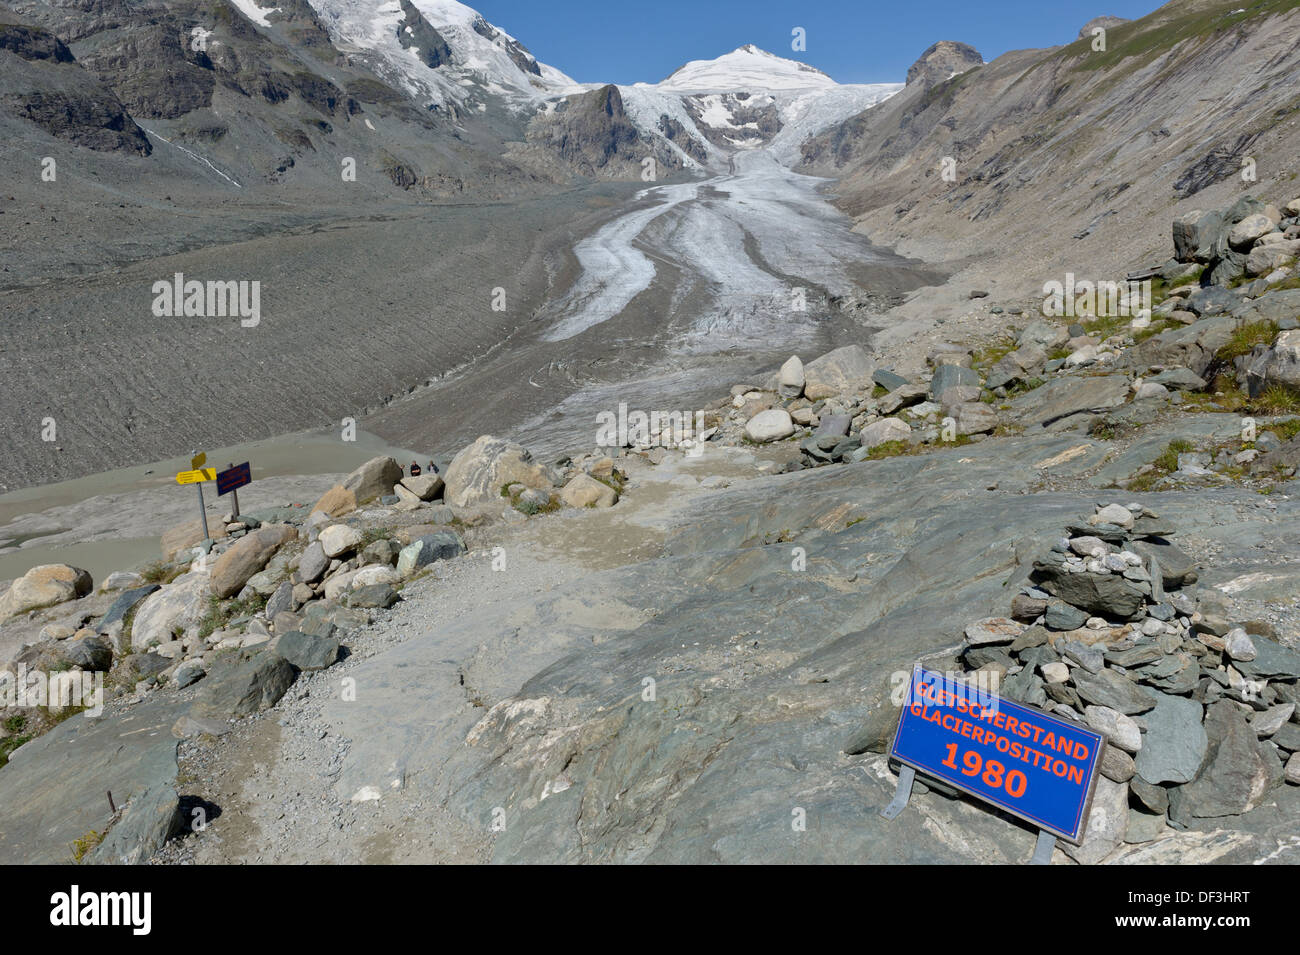 Austria / Hohe Tauern National Park - Impacts of Climate Change: glacier melting. Sign marking the retreat of the glacier. - Stock Image